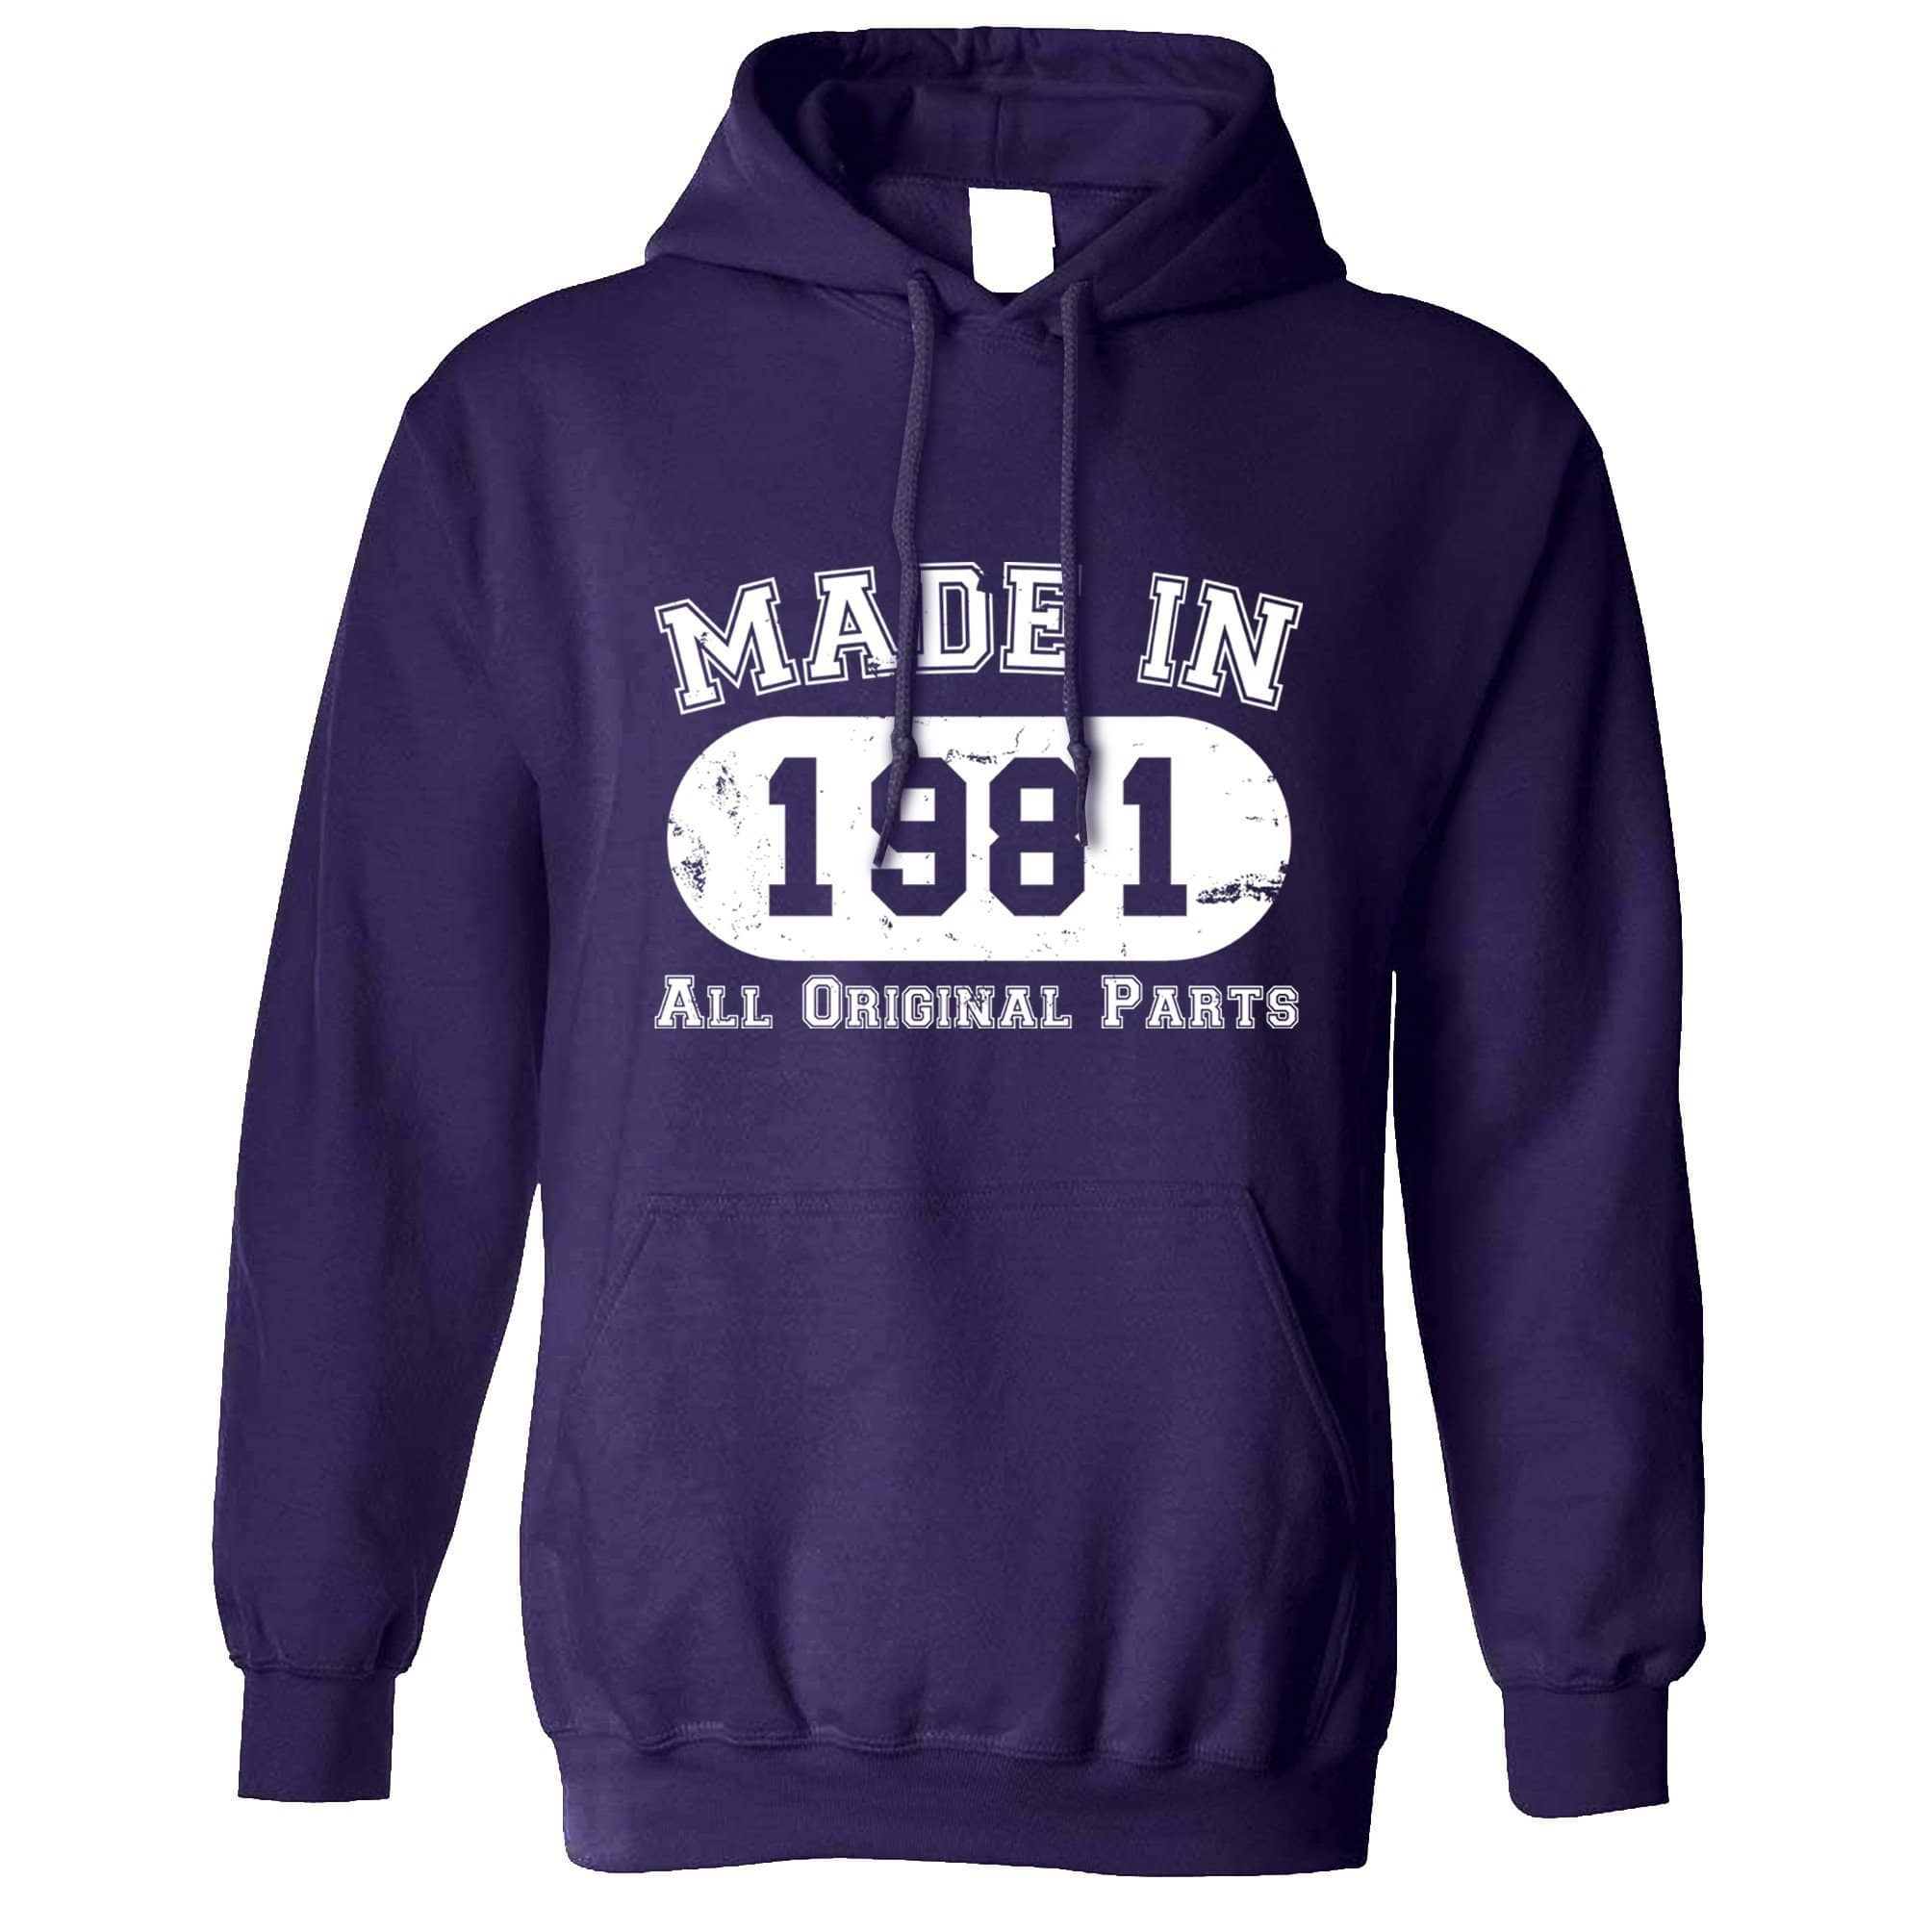 Made in 1981 All Original Parts Hoodie [Distressed]